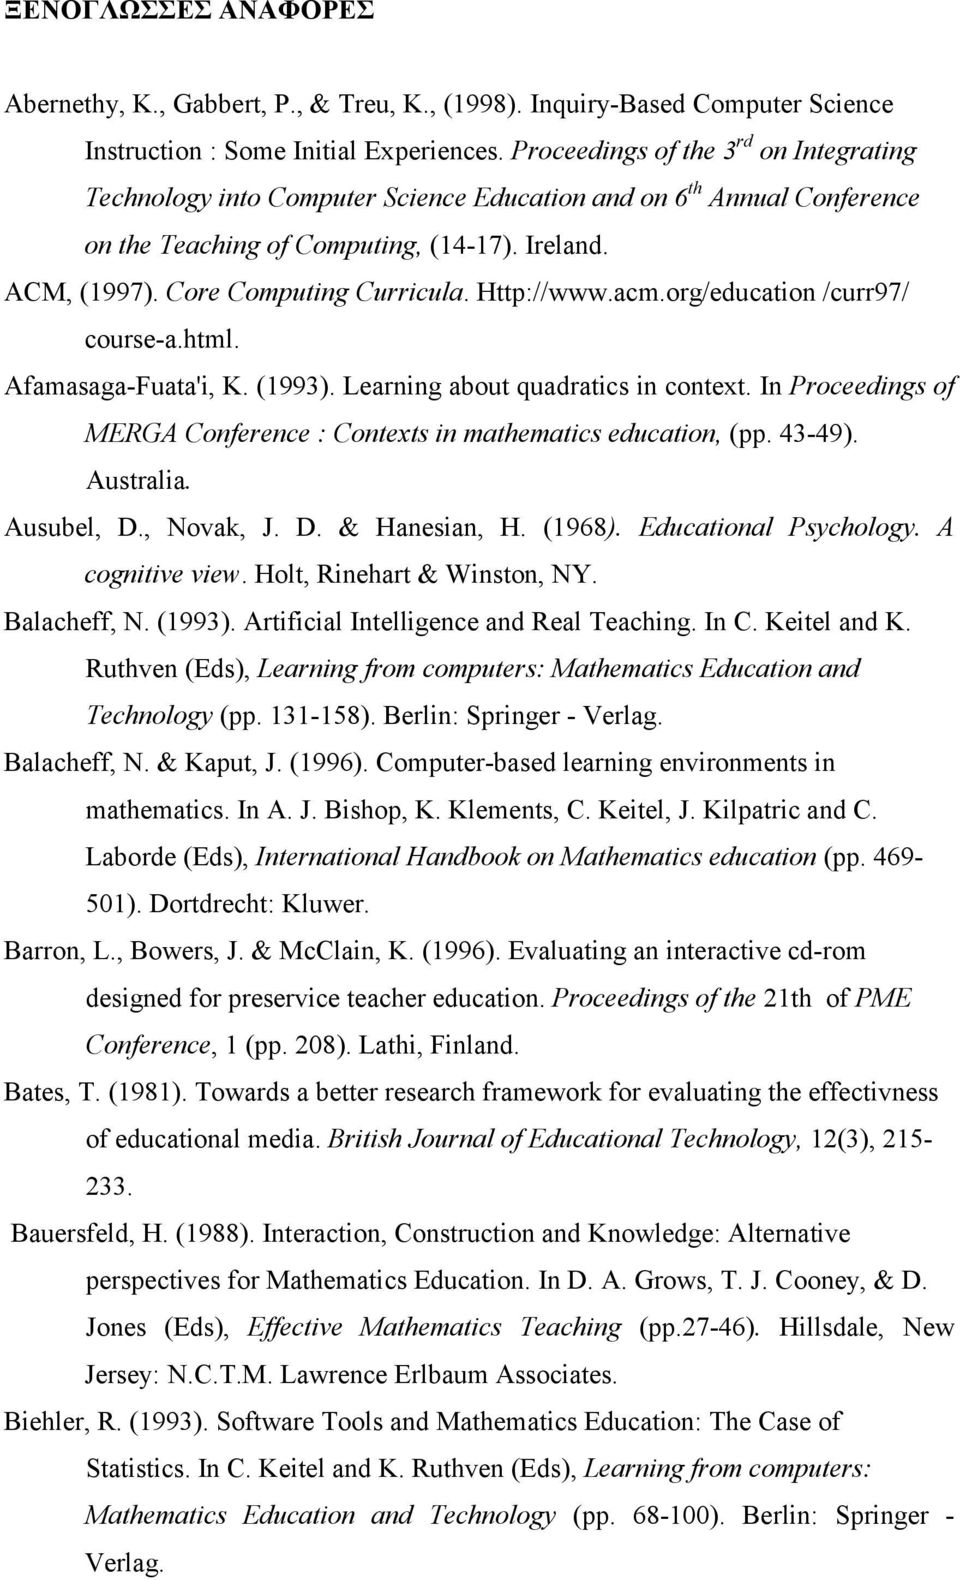 Http://www.acm.org/education /curr97/ course-a.html. Afamasaga-Fuata'i, K. (1993). Learning about quadratics in context. Ιn Proceedings of MERGA Conference : Contexts in mathematics education, (pp.